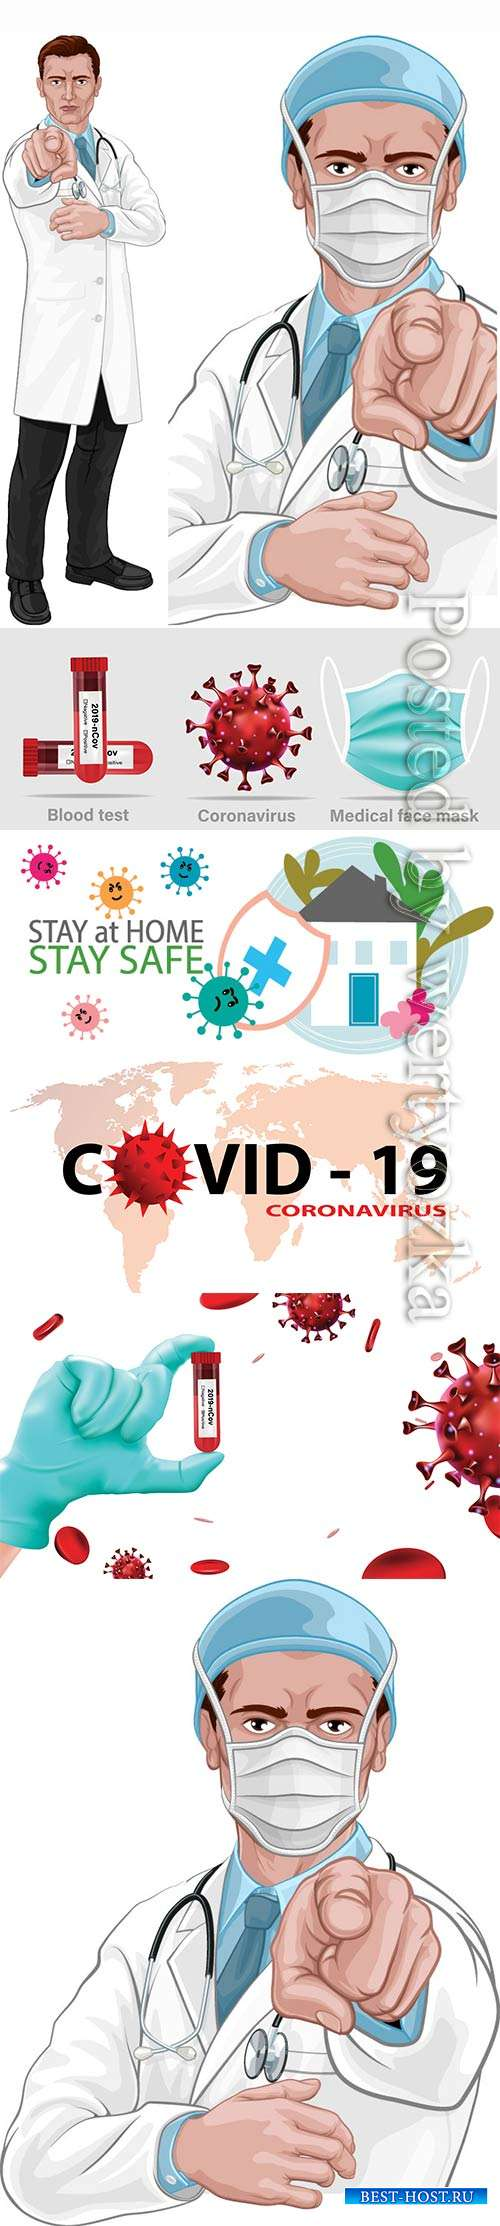 COVID 19, Coranavirus vector illustration sets # 25